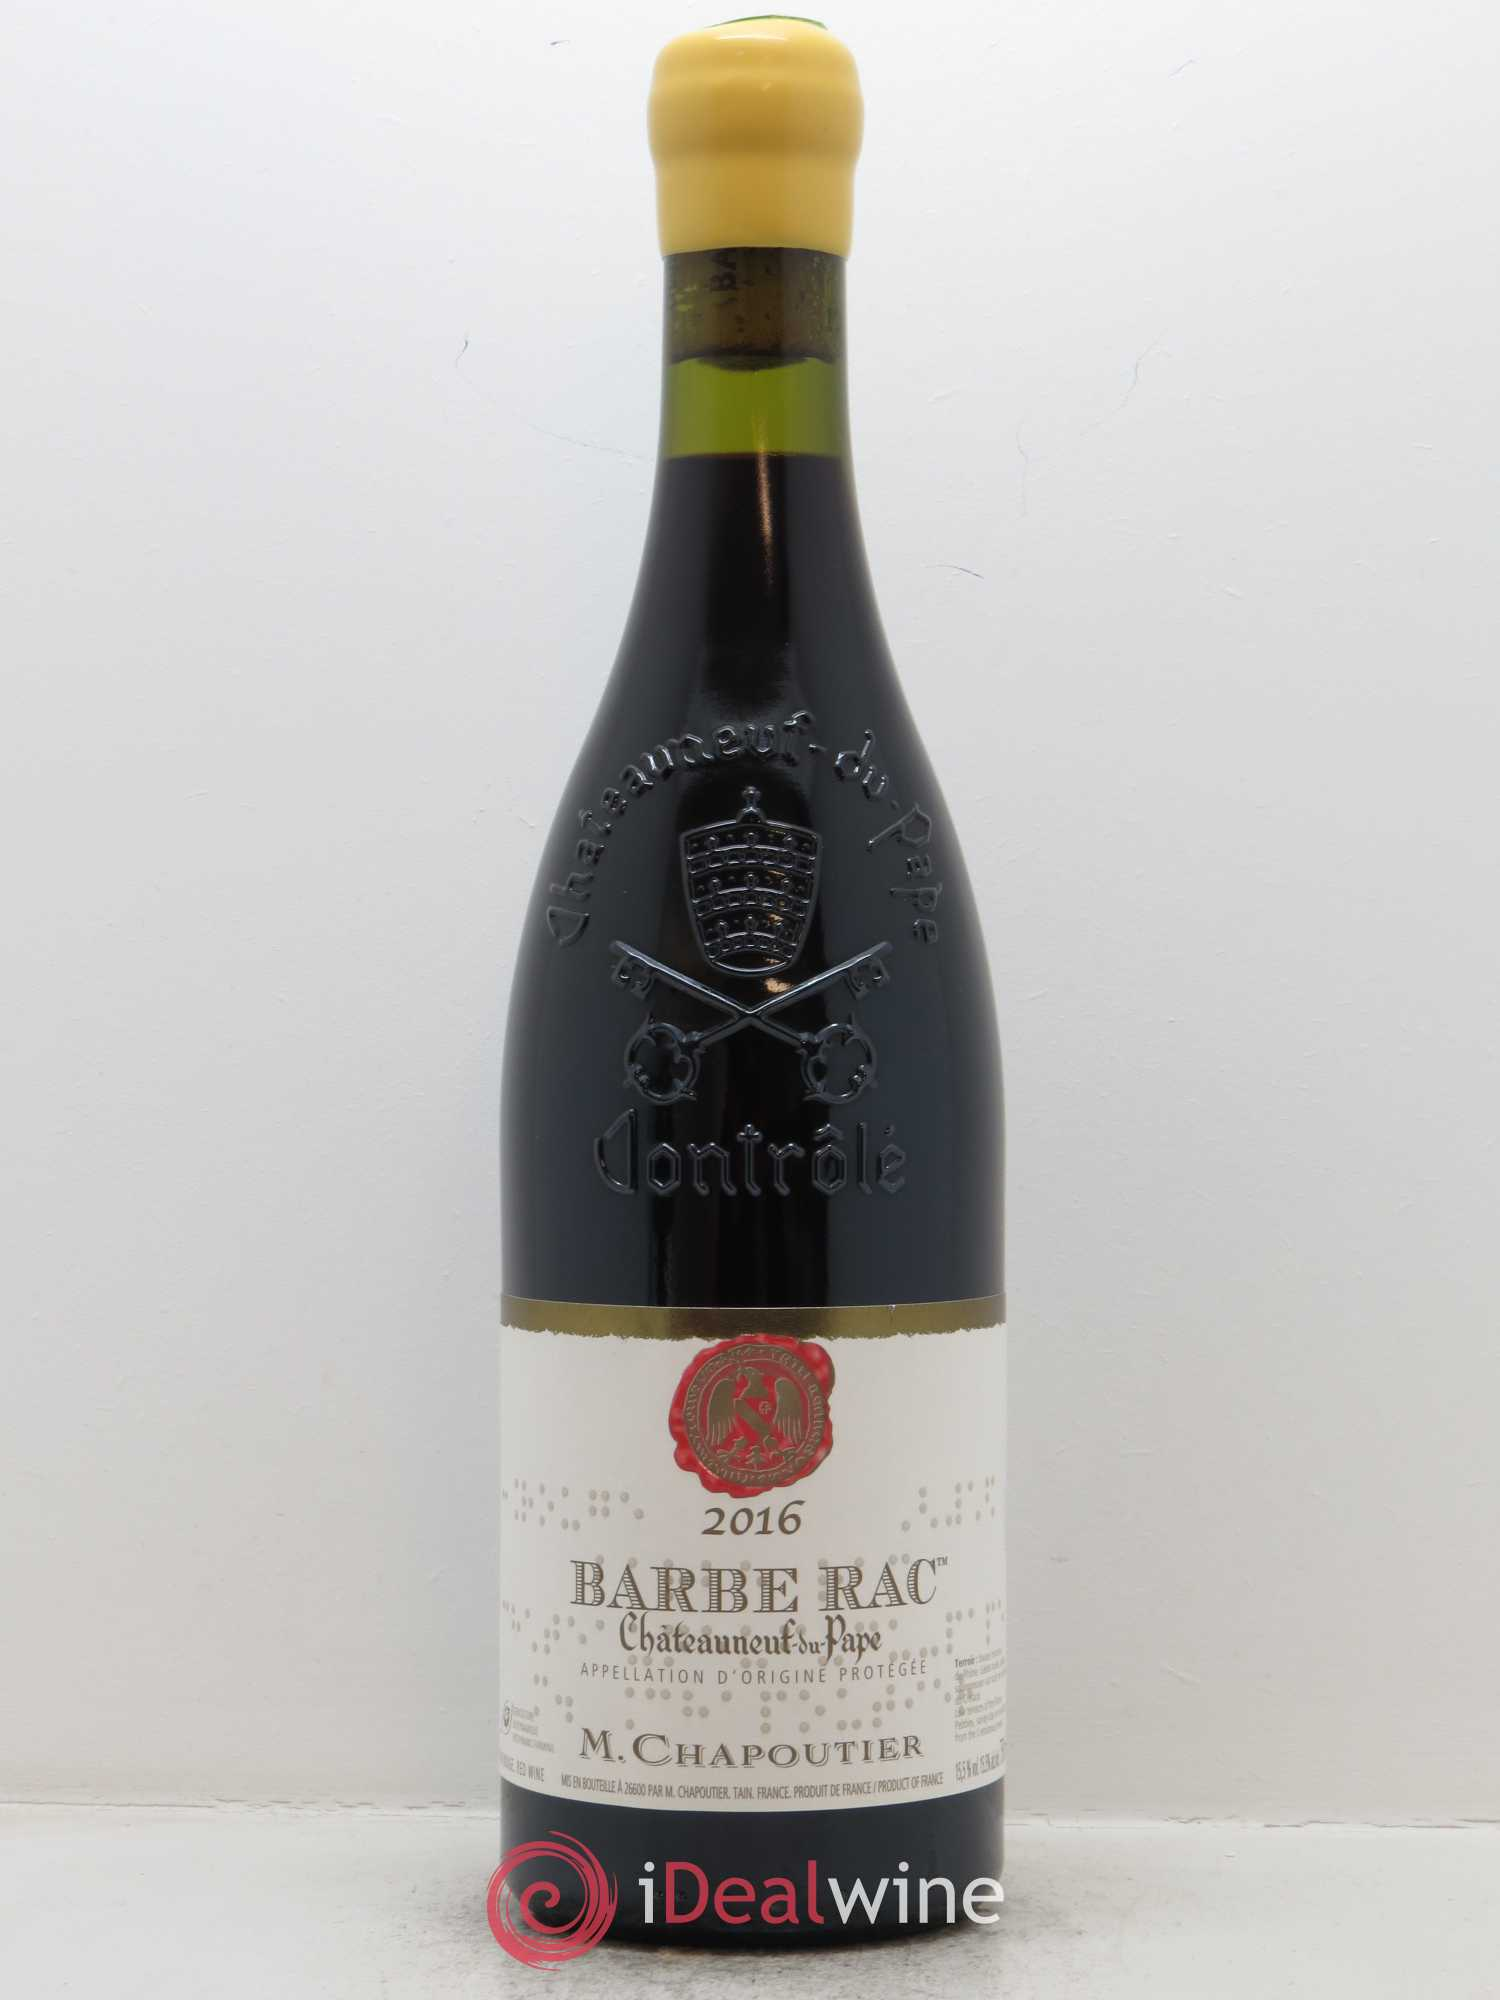 Châteauneuf-du-Pape M. Chapoutier Barbe Rac Chapoutier  2016 - Lot of 1 Bottle